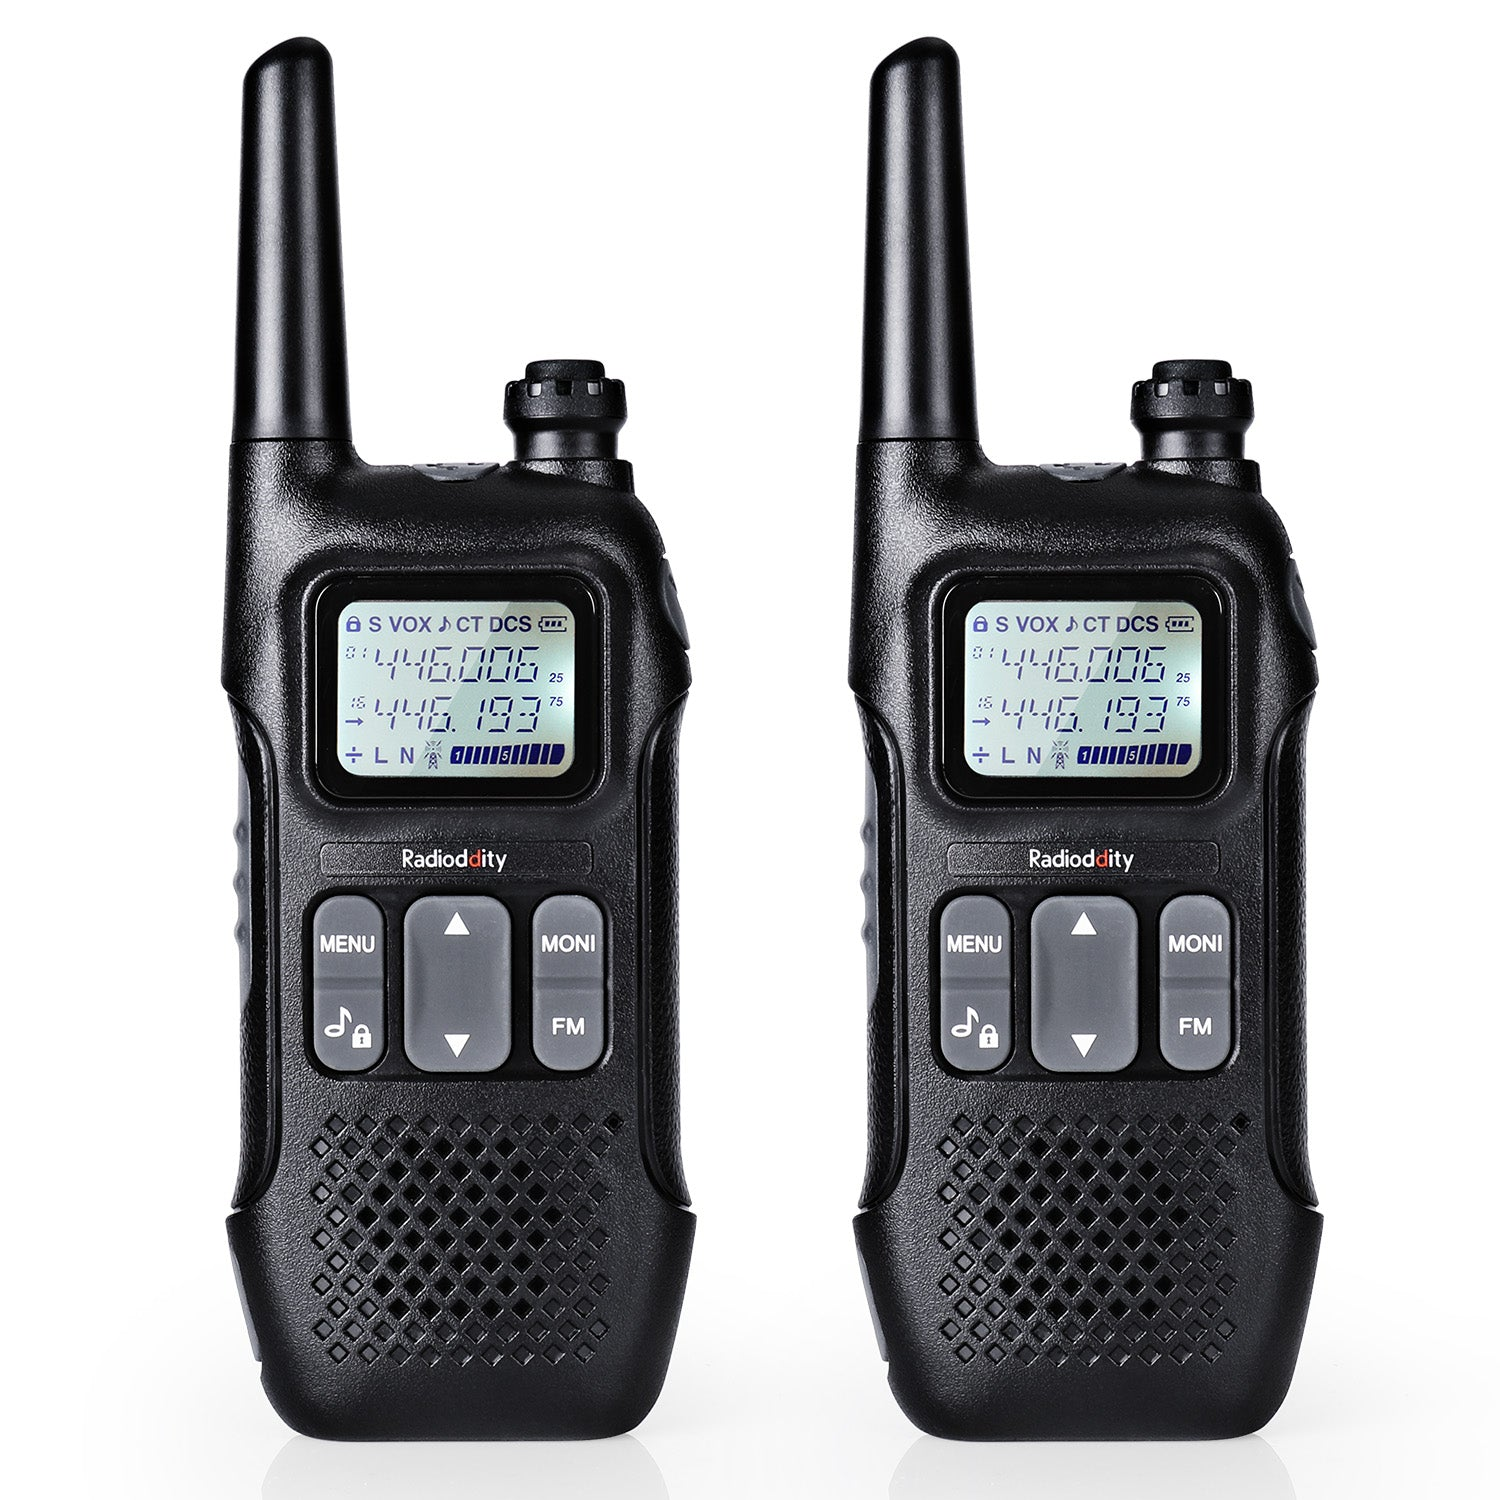 Radioddity FS-T1 / PR-T1 [1 Pair] | NOAA Weather Alert | License-free | USB Charging - Radioddity